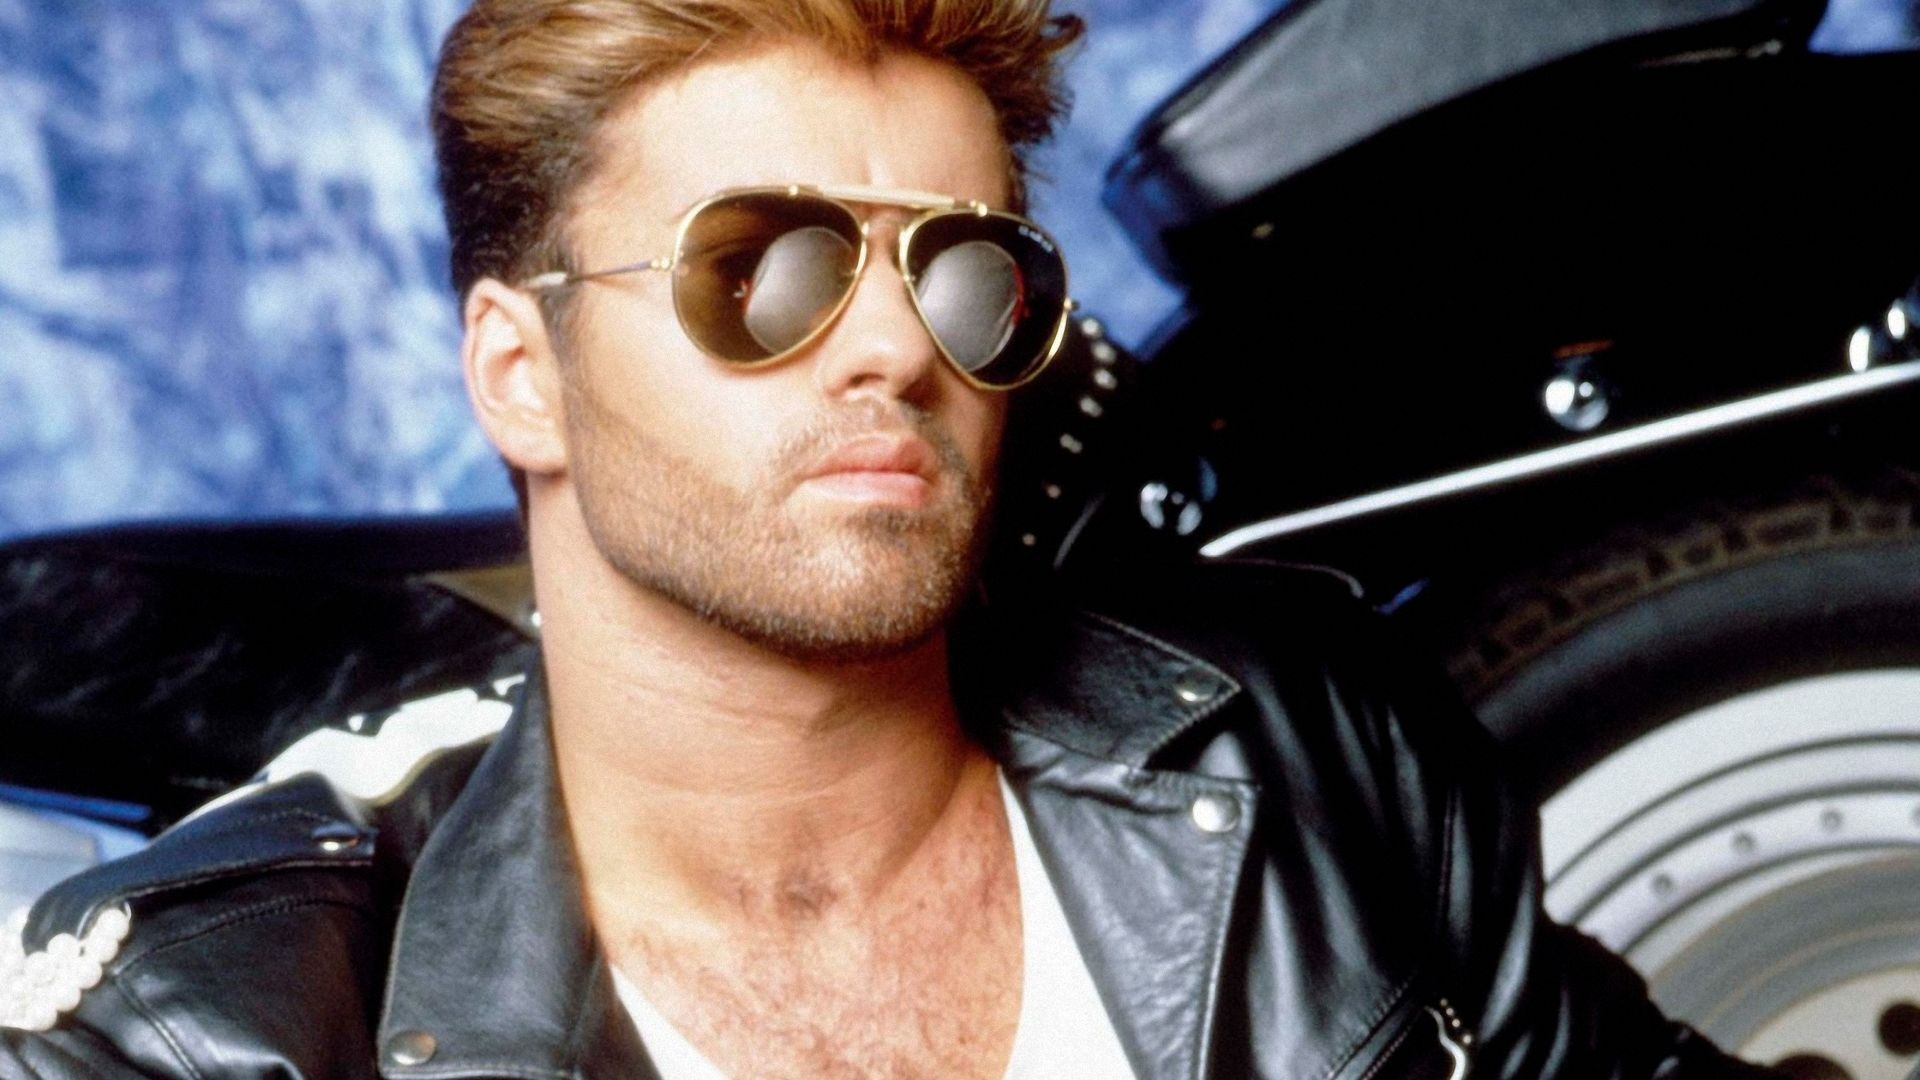 Georgios Kyriacos Panayiotou (25 June 1963 – 25 December 2016) aka George Michael